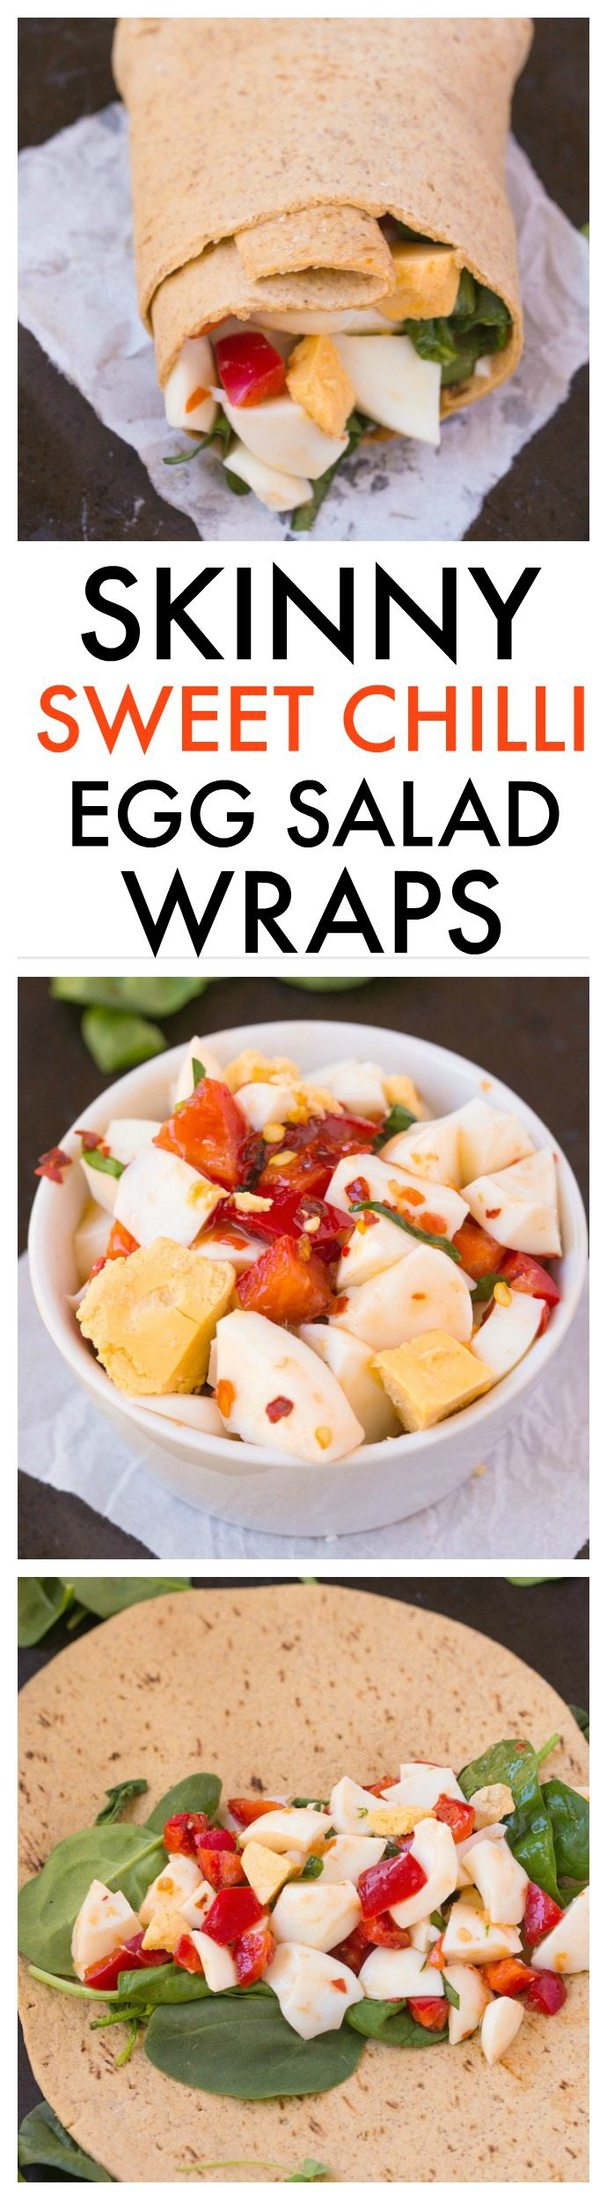 Healthy Skinny Sweet Chilli Egg Salad Wraps made with NO mayonnaise but SO tasty- The salad itself is completely gluten free and paleo friendly! - thebigmansworld.com